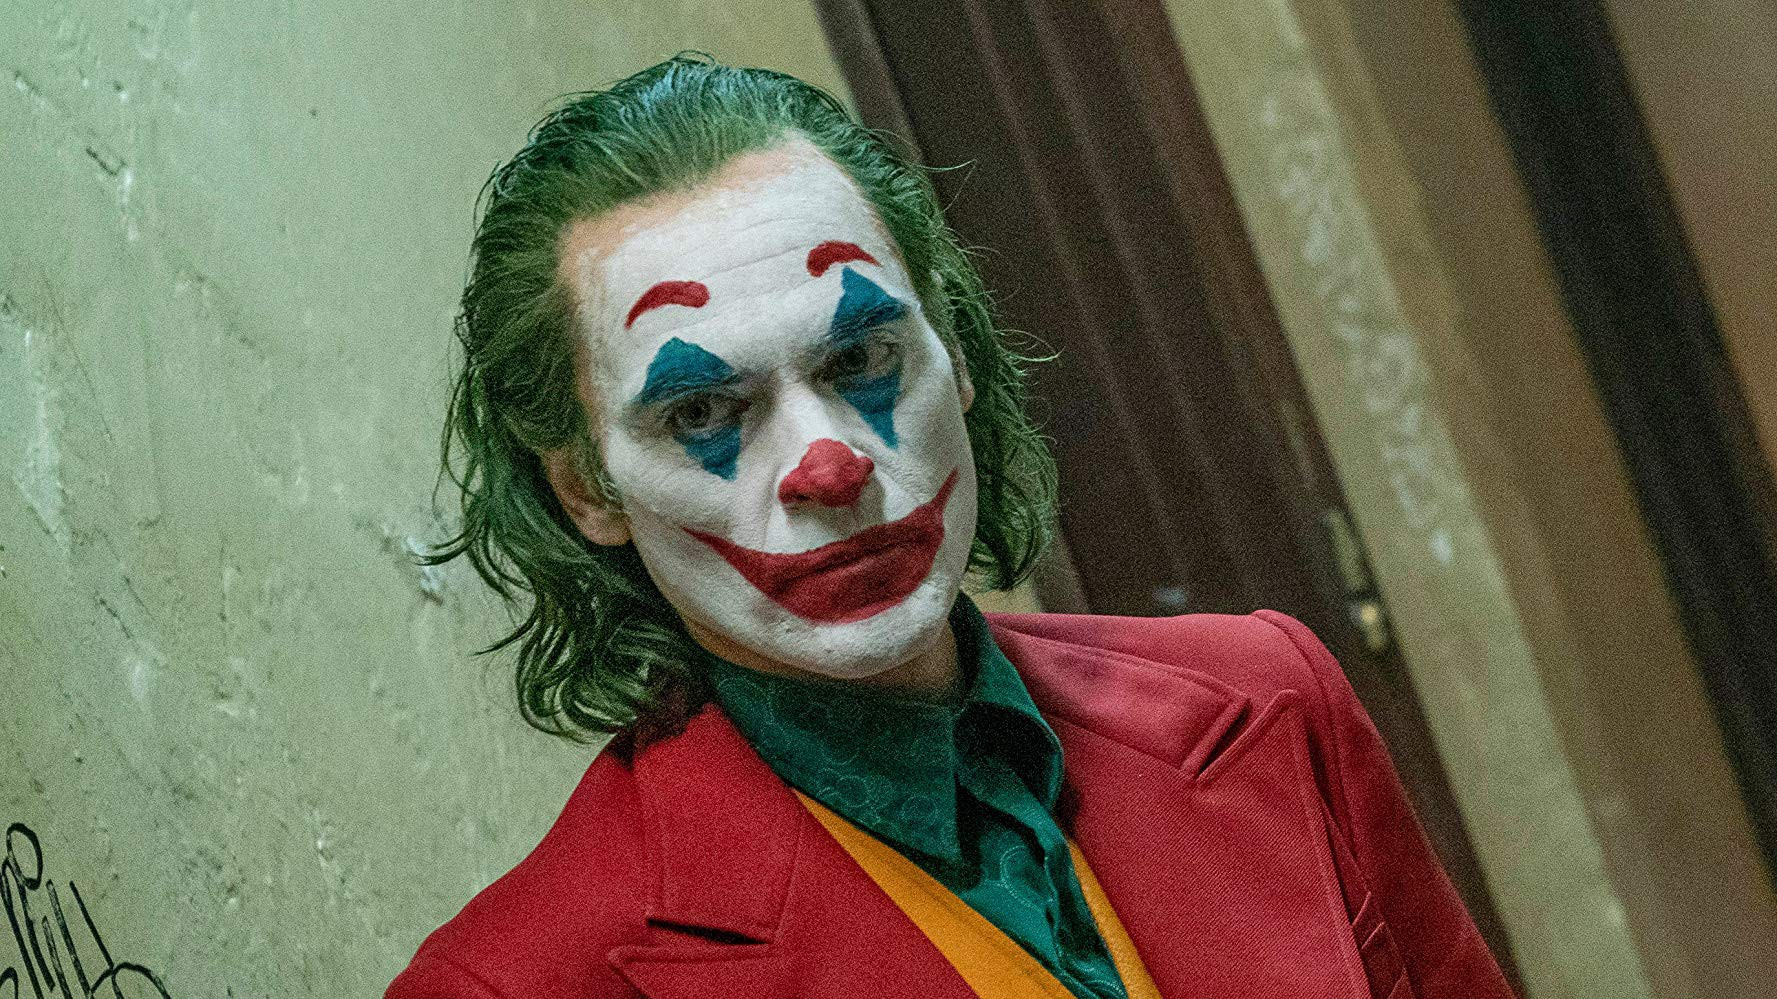 Joker Images Free Download Posted By John Mercado Watch joker online, joker google drive, joker in hd 1080p, watch watch joker online watch joker online google drive watch joker online full google drive click here download : joker images free download posted by